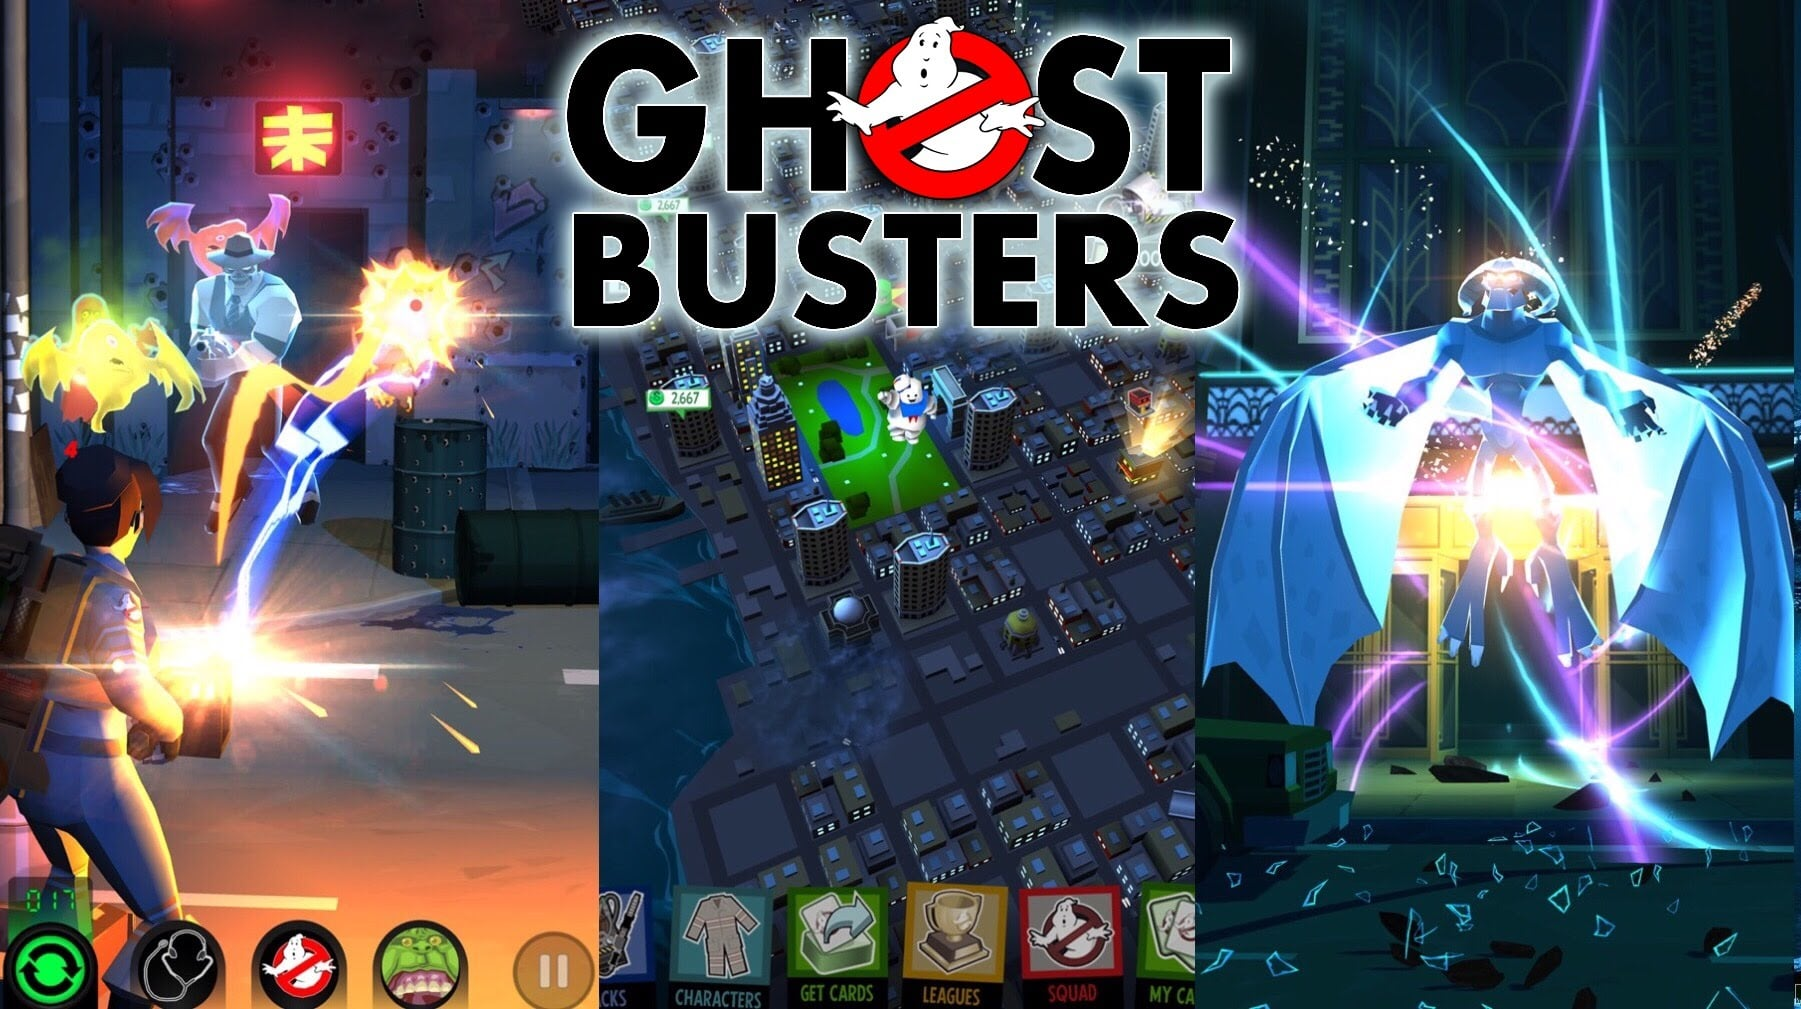 Ghostbusters: Slime City for Windows 10 PC